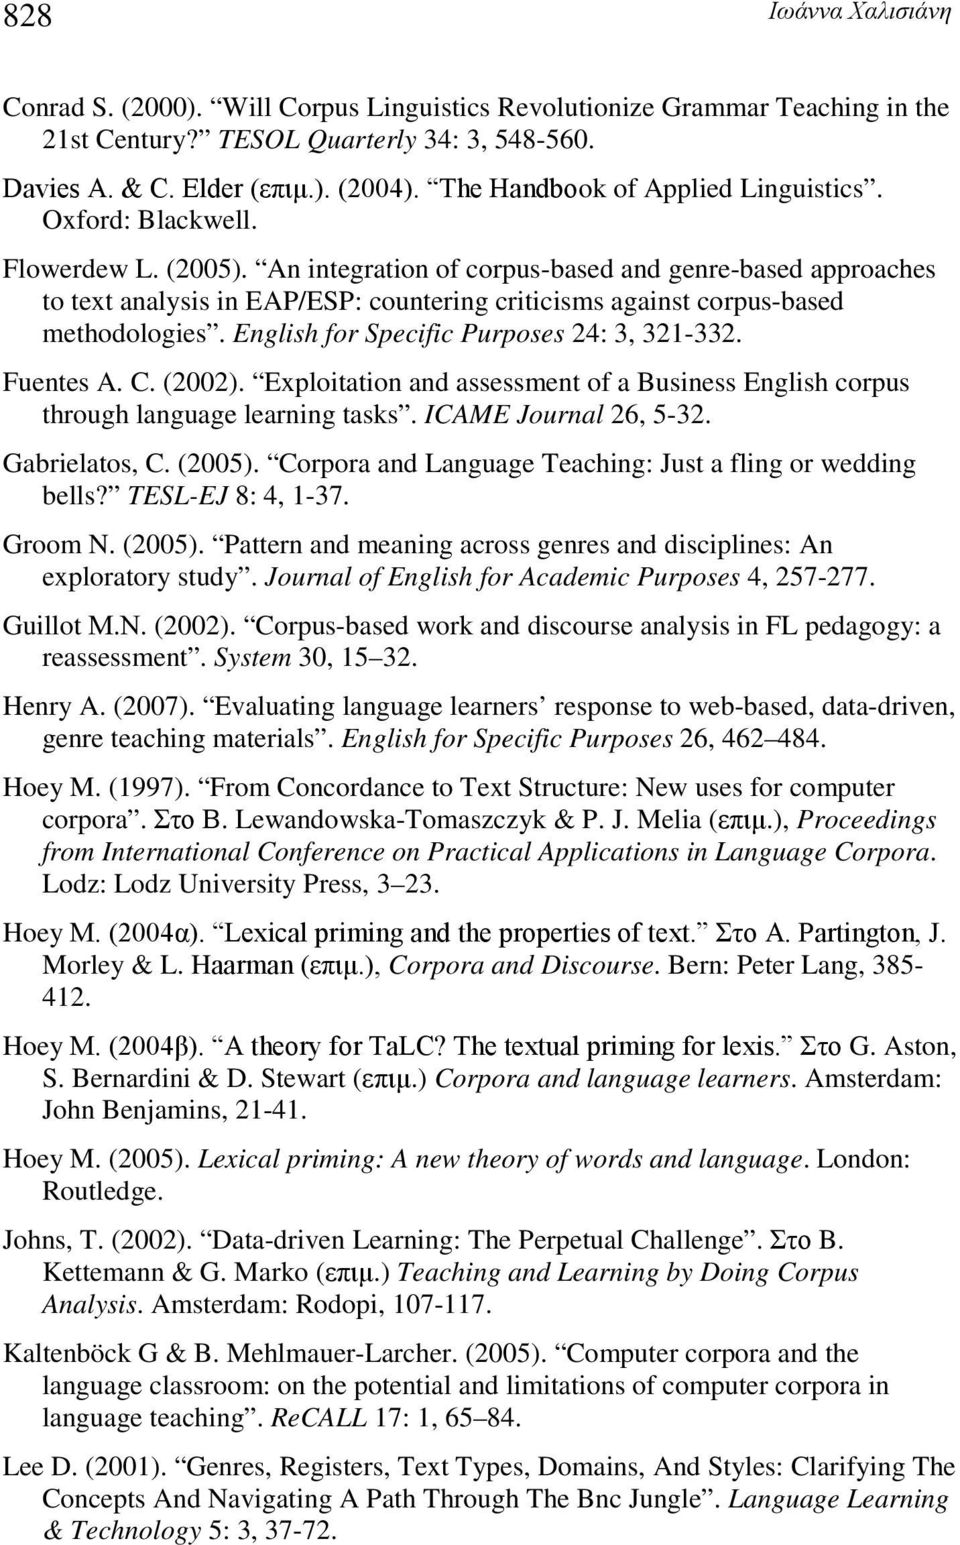 An integration of corpus-based and genre-based approaches to text analysis in EAP/ESP: countering criticisms against corpus-based methodologies. English for Specific Purposes 24: 3, 321-332.